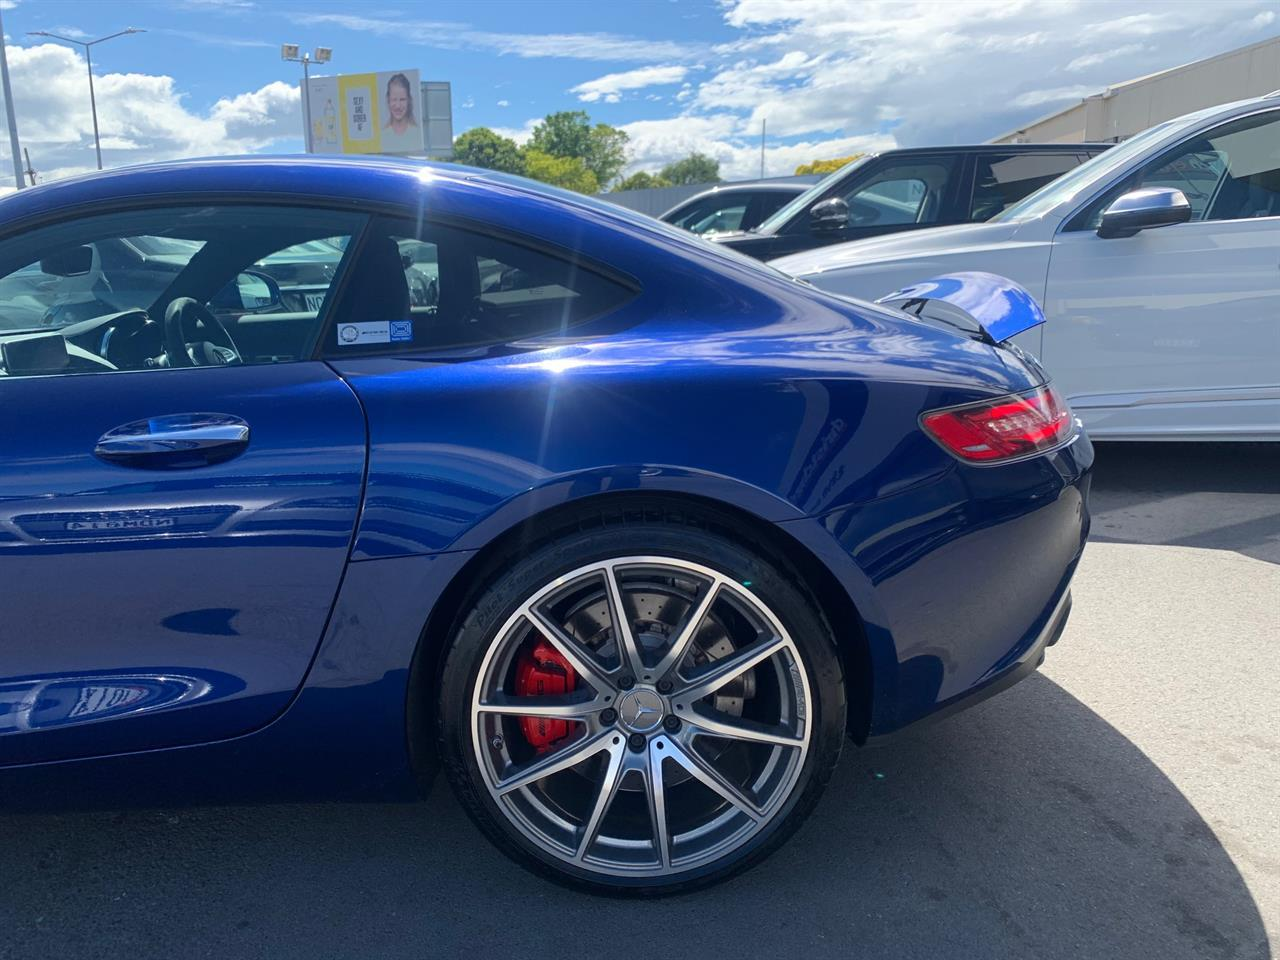 image-5, 2017 MercedesBenz AMG GT-S 4.0 V8 Coupe at Christchurch